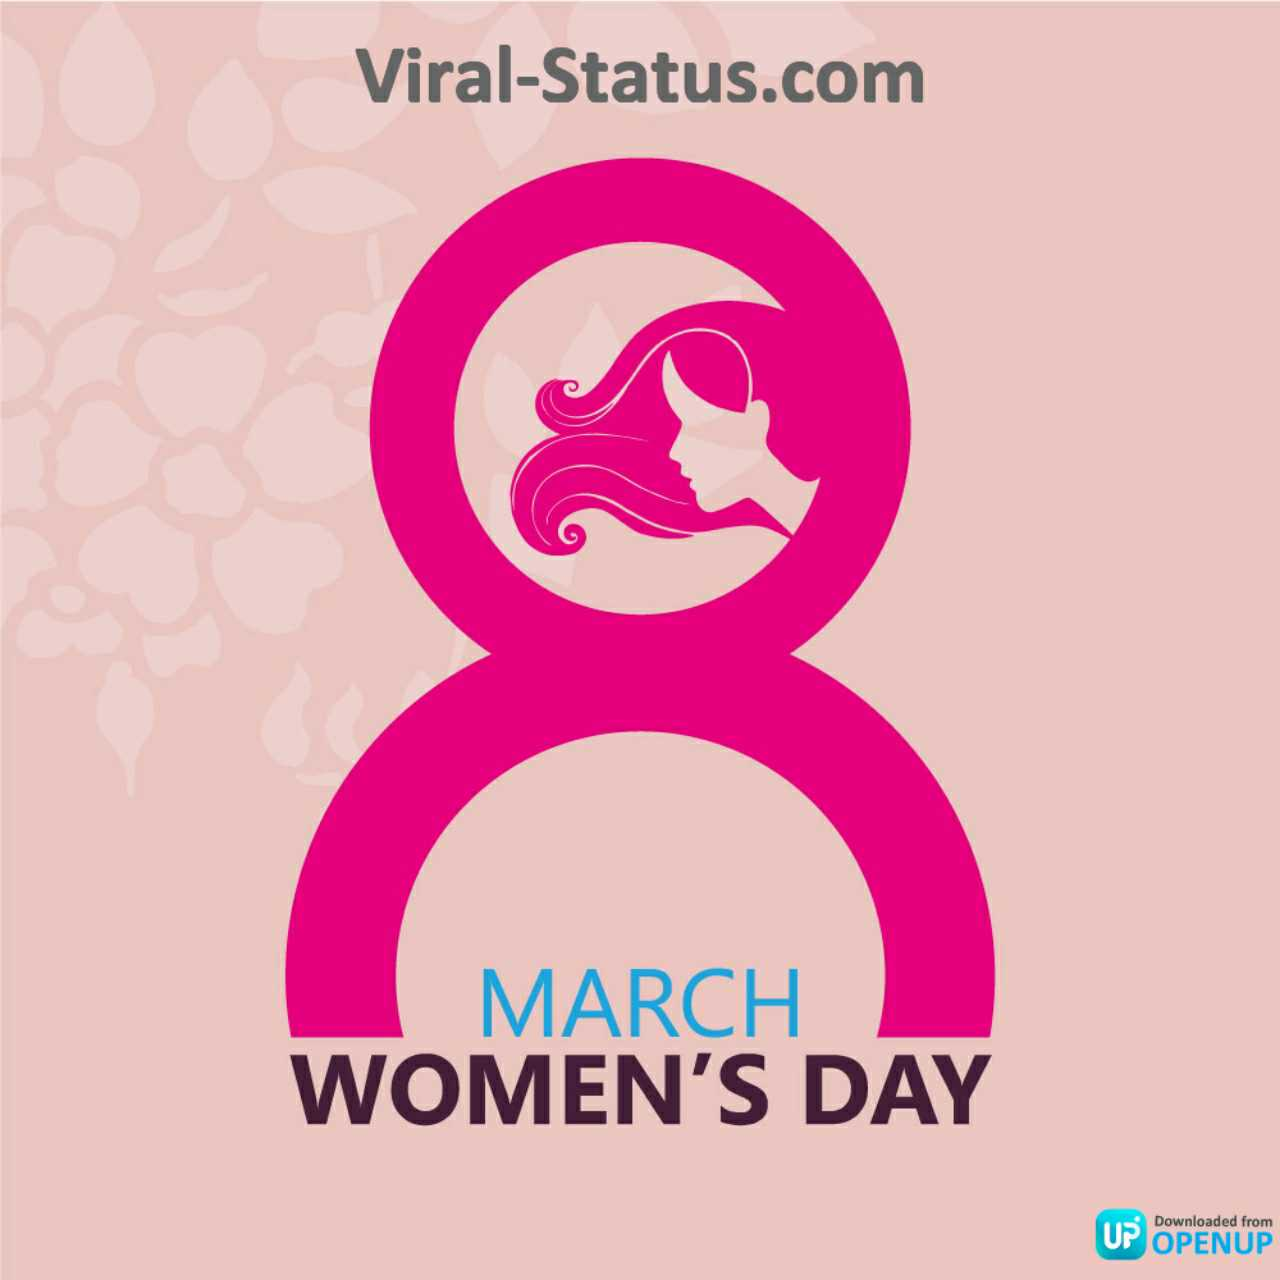 women's day wishes images